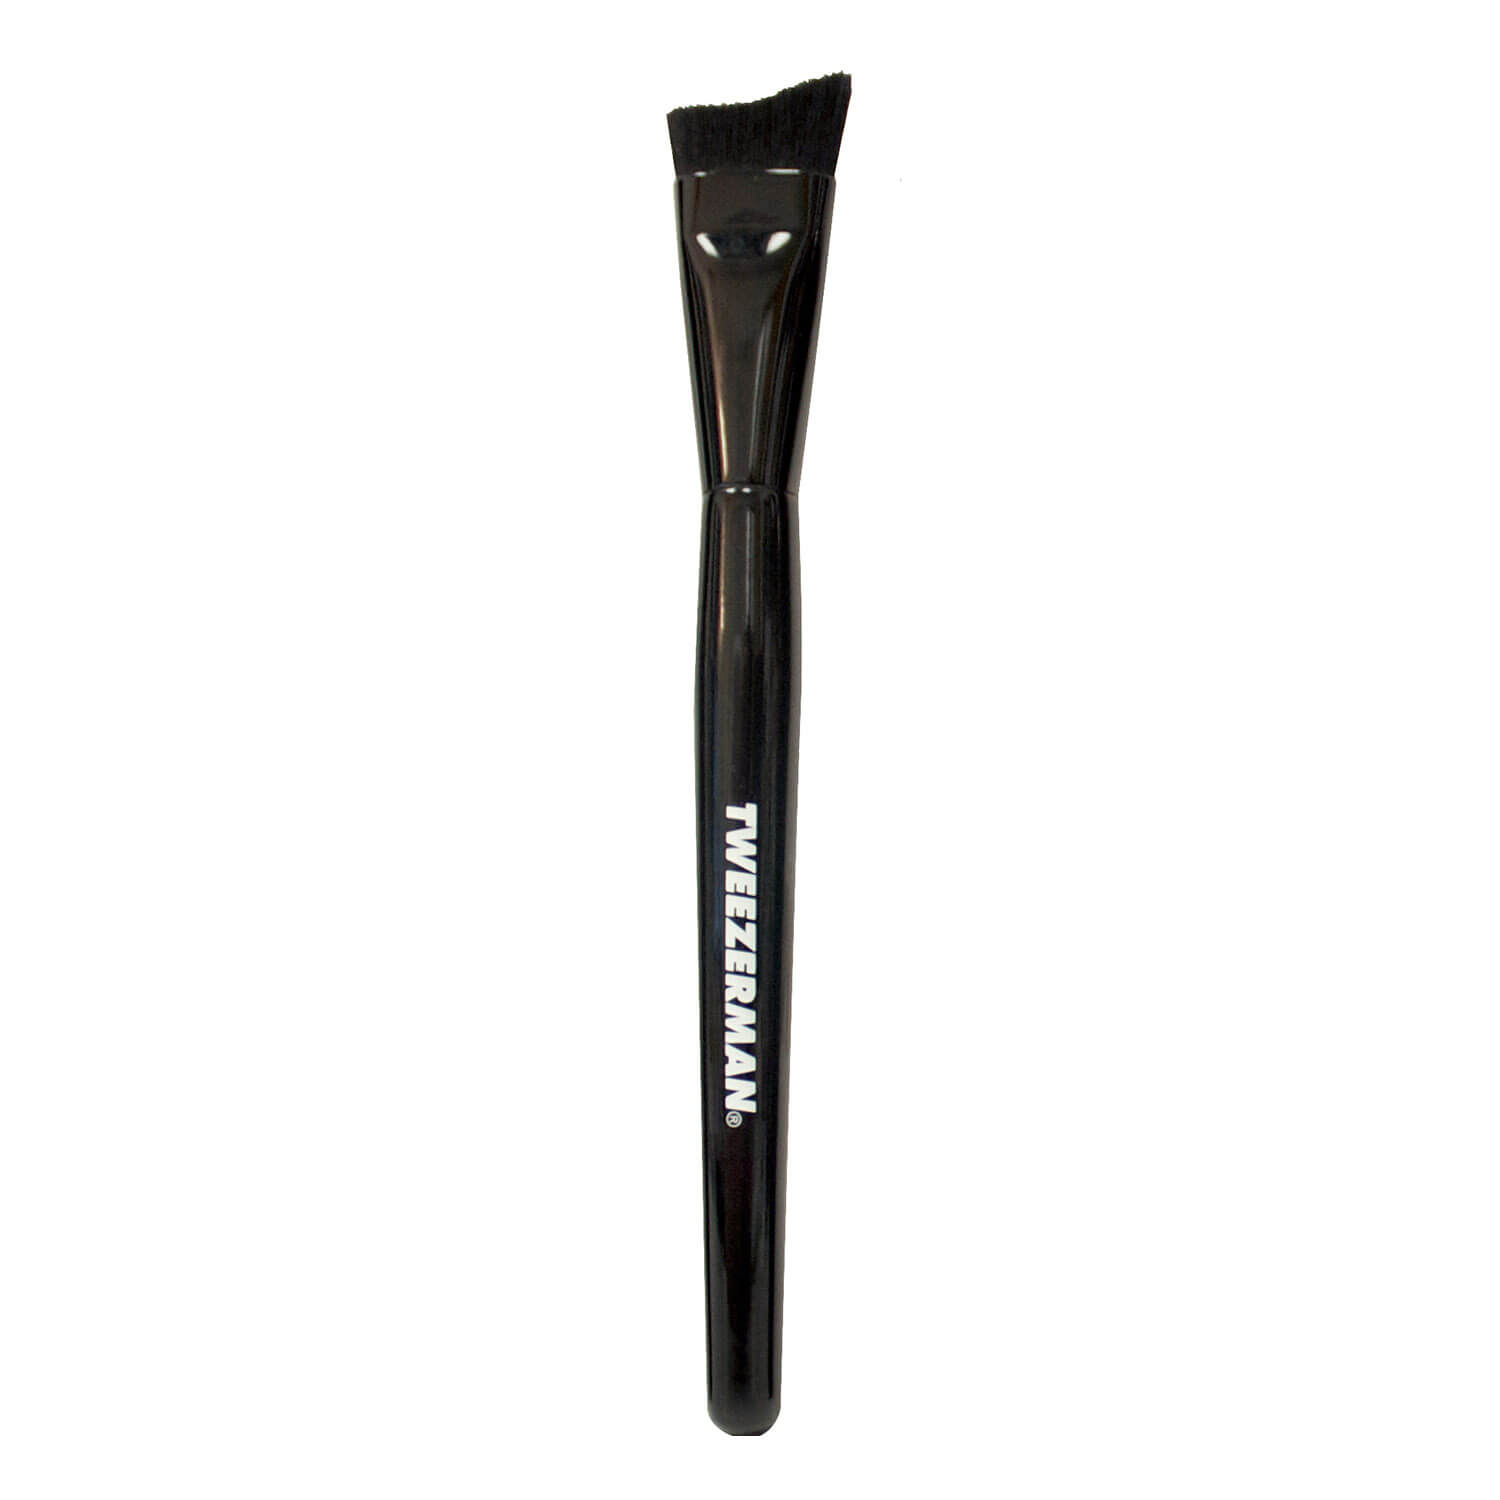 Brush iQ - iQ Contour Concealer Brush